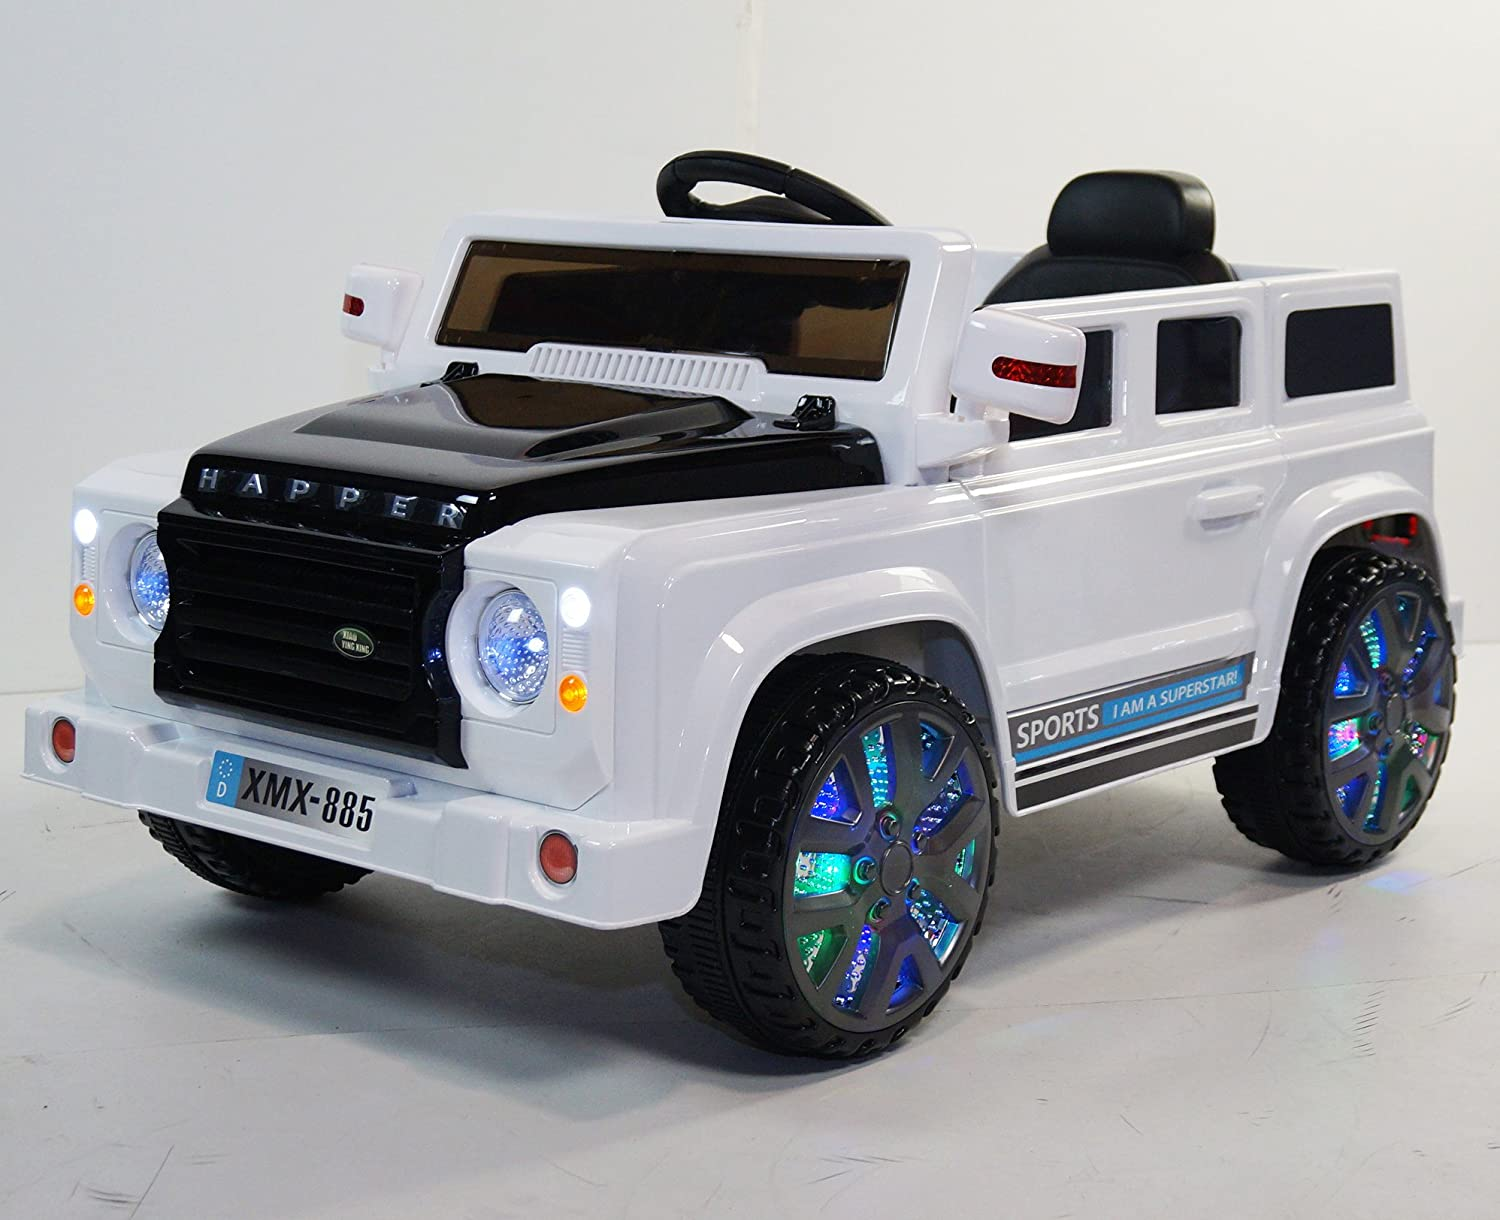 range rover style ride on toy car for kids with remote control toys games